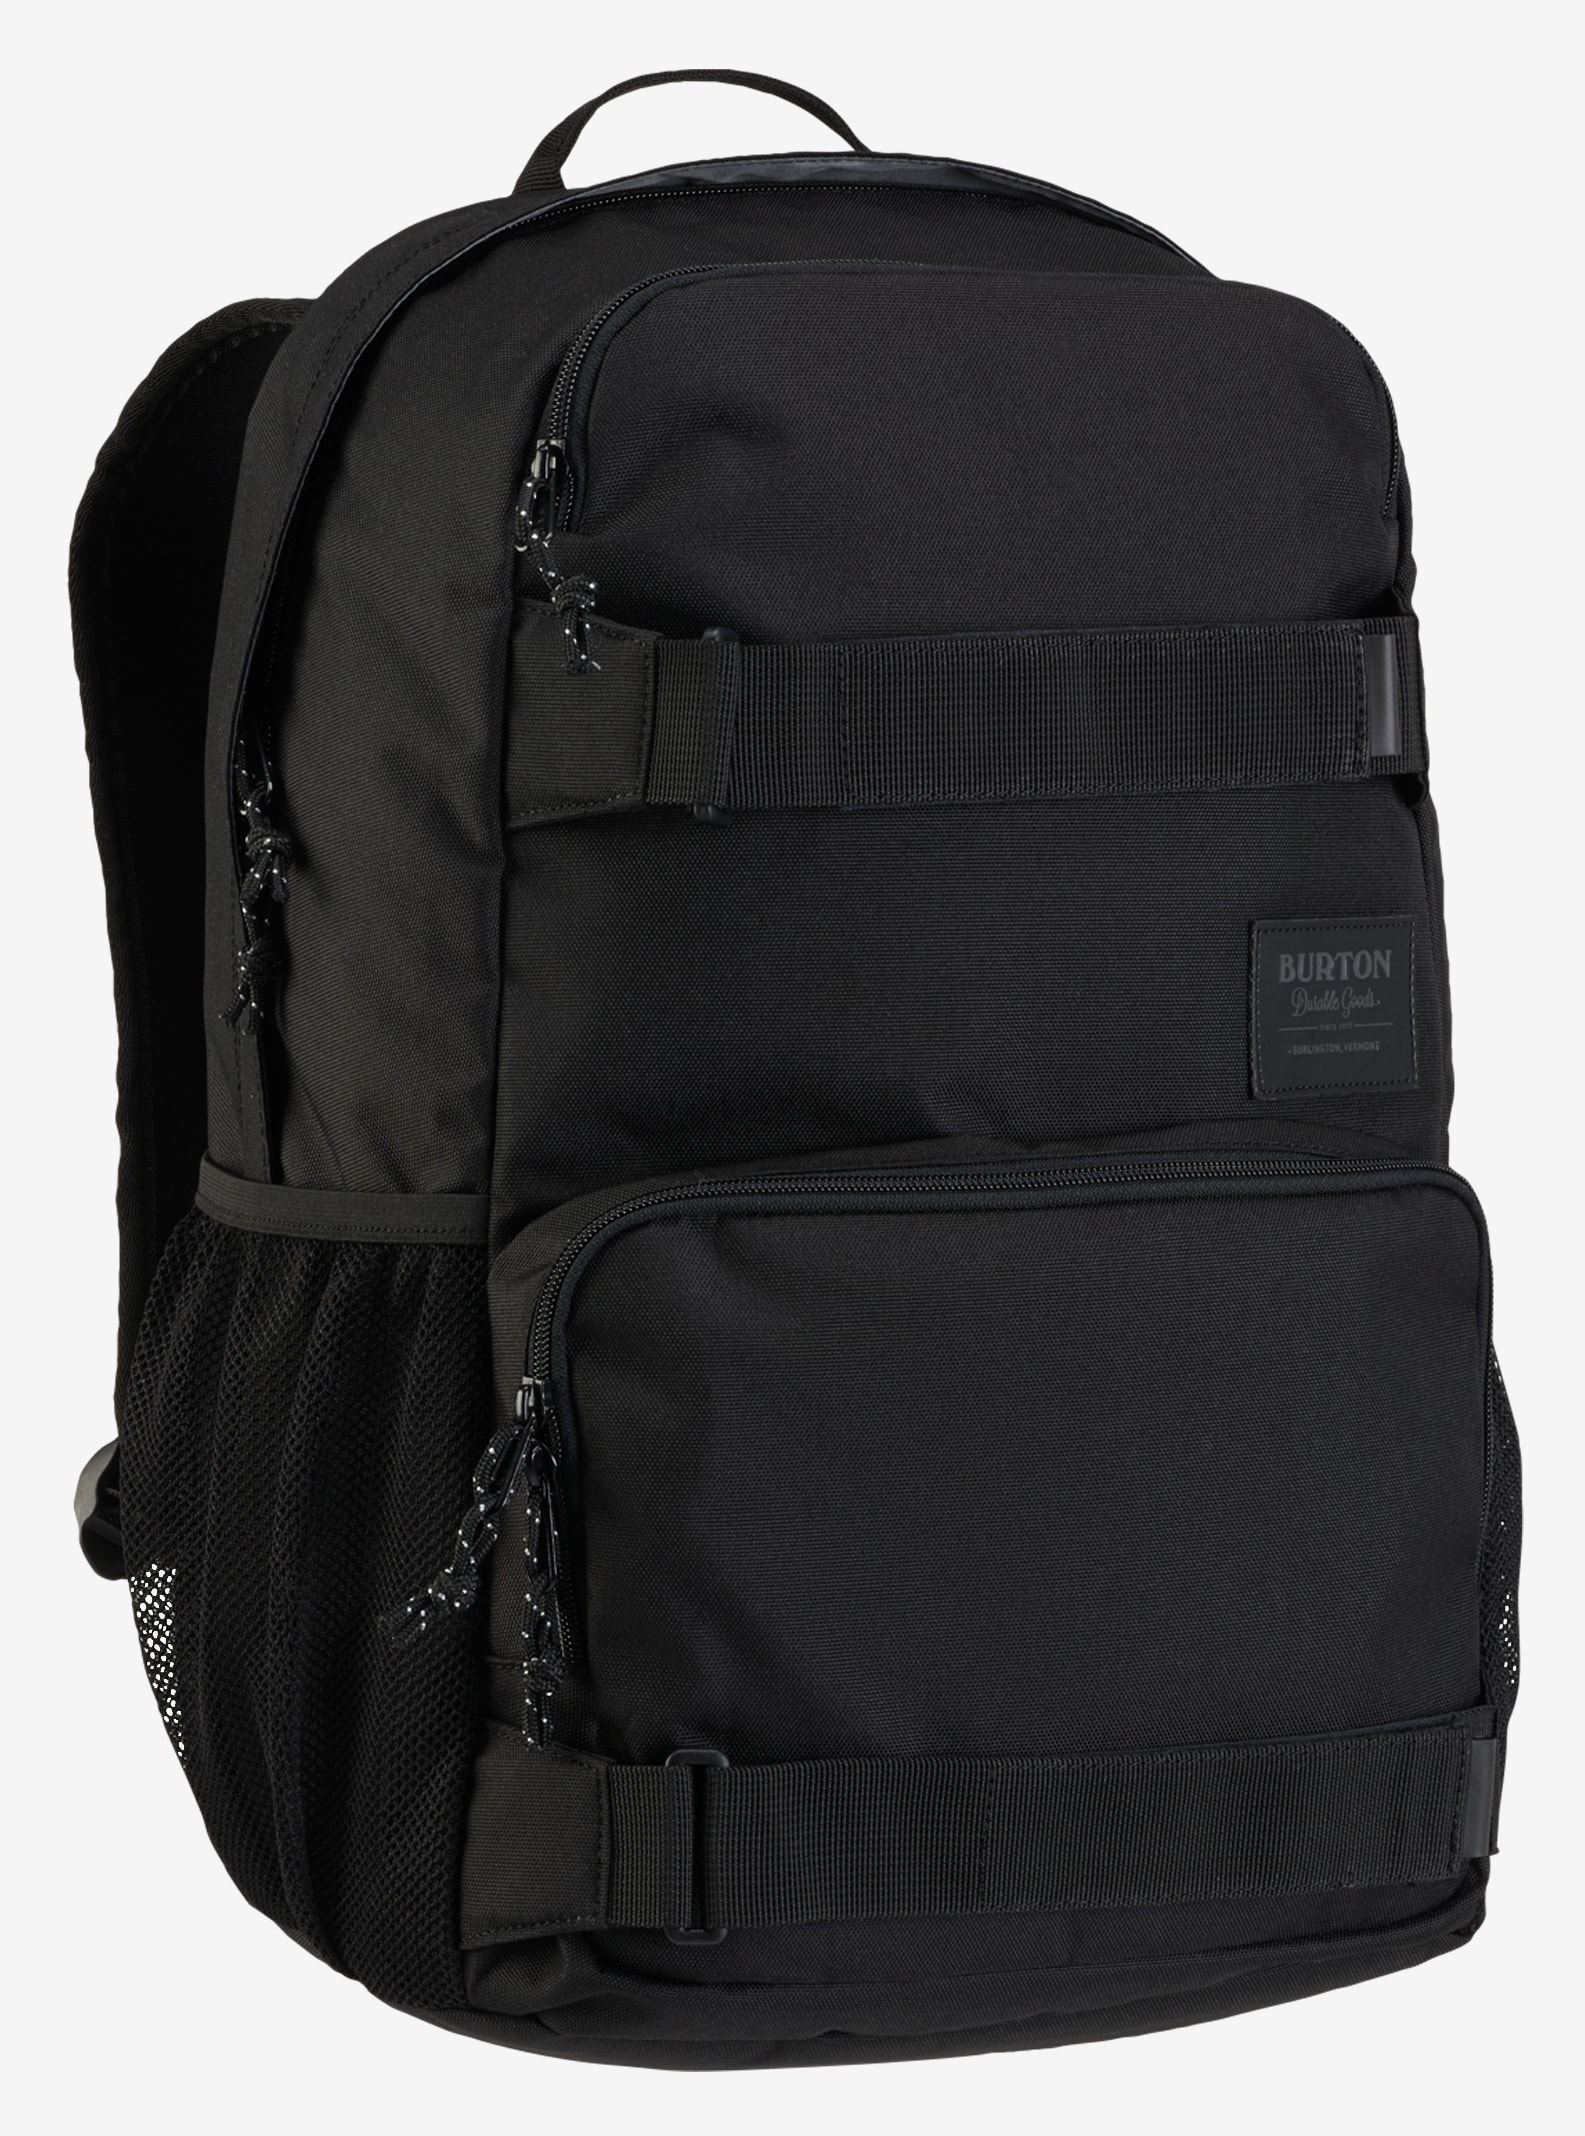 Burton Treble Yell Backpack shown in True Black